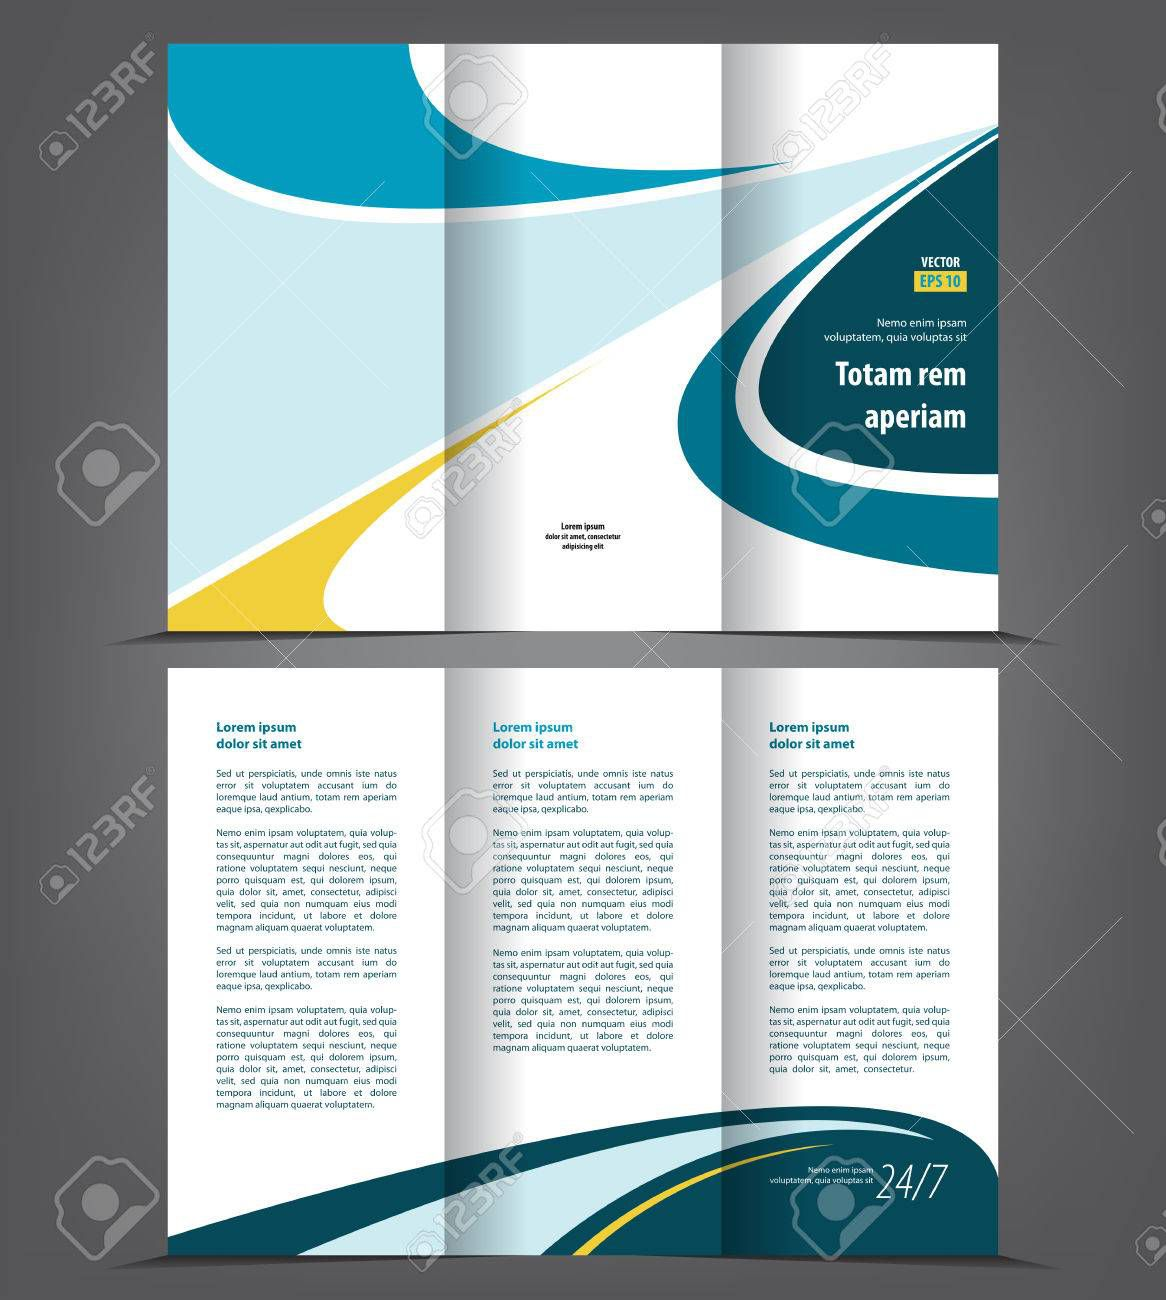 002 Phenomenal Three Fold Brochure Template High Resolution  Word Free 3 Psd DownloadFull